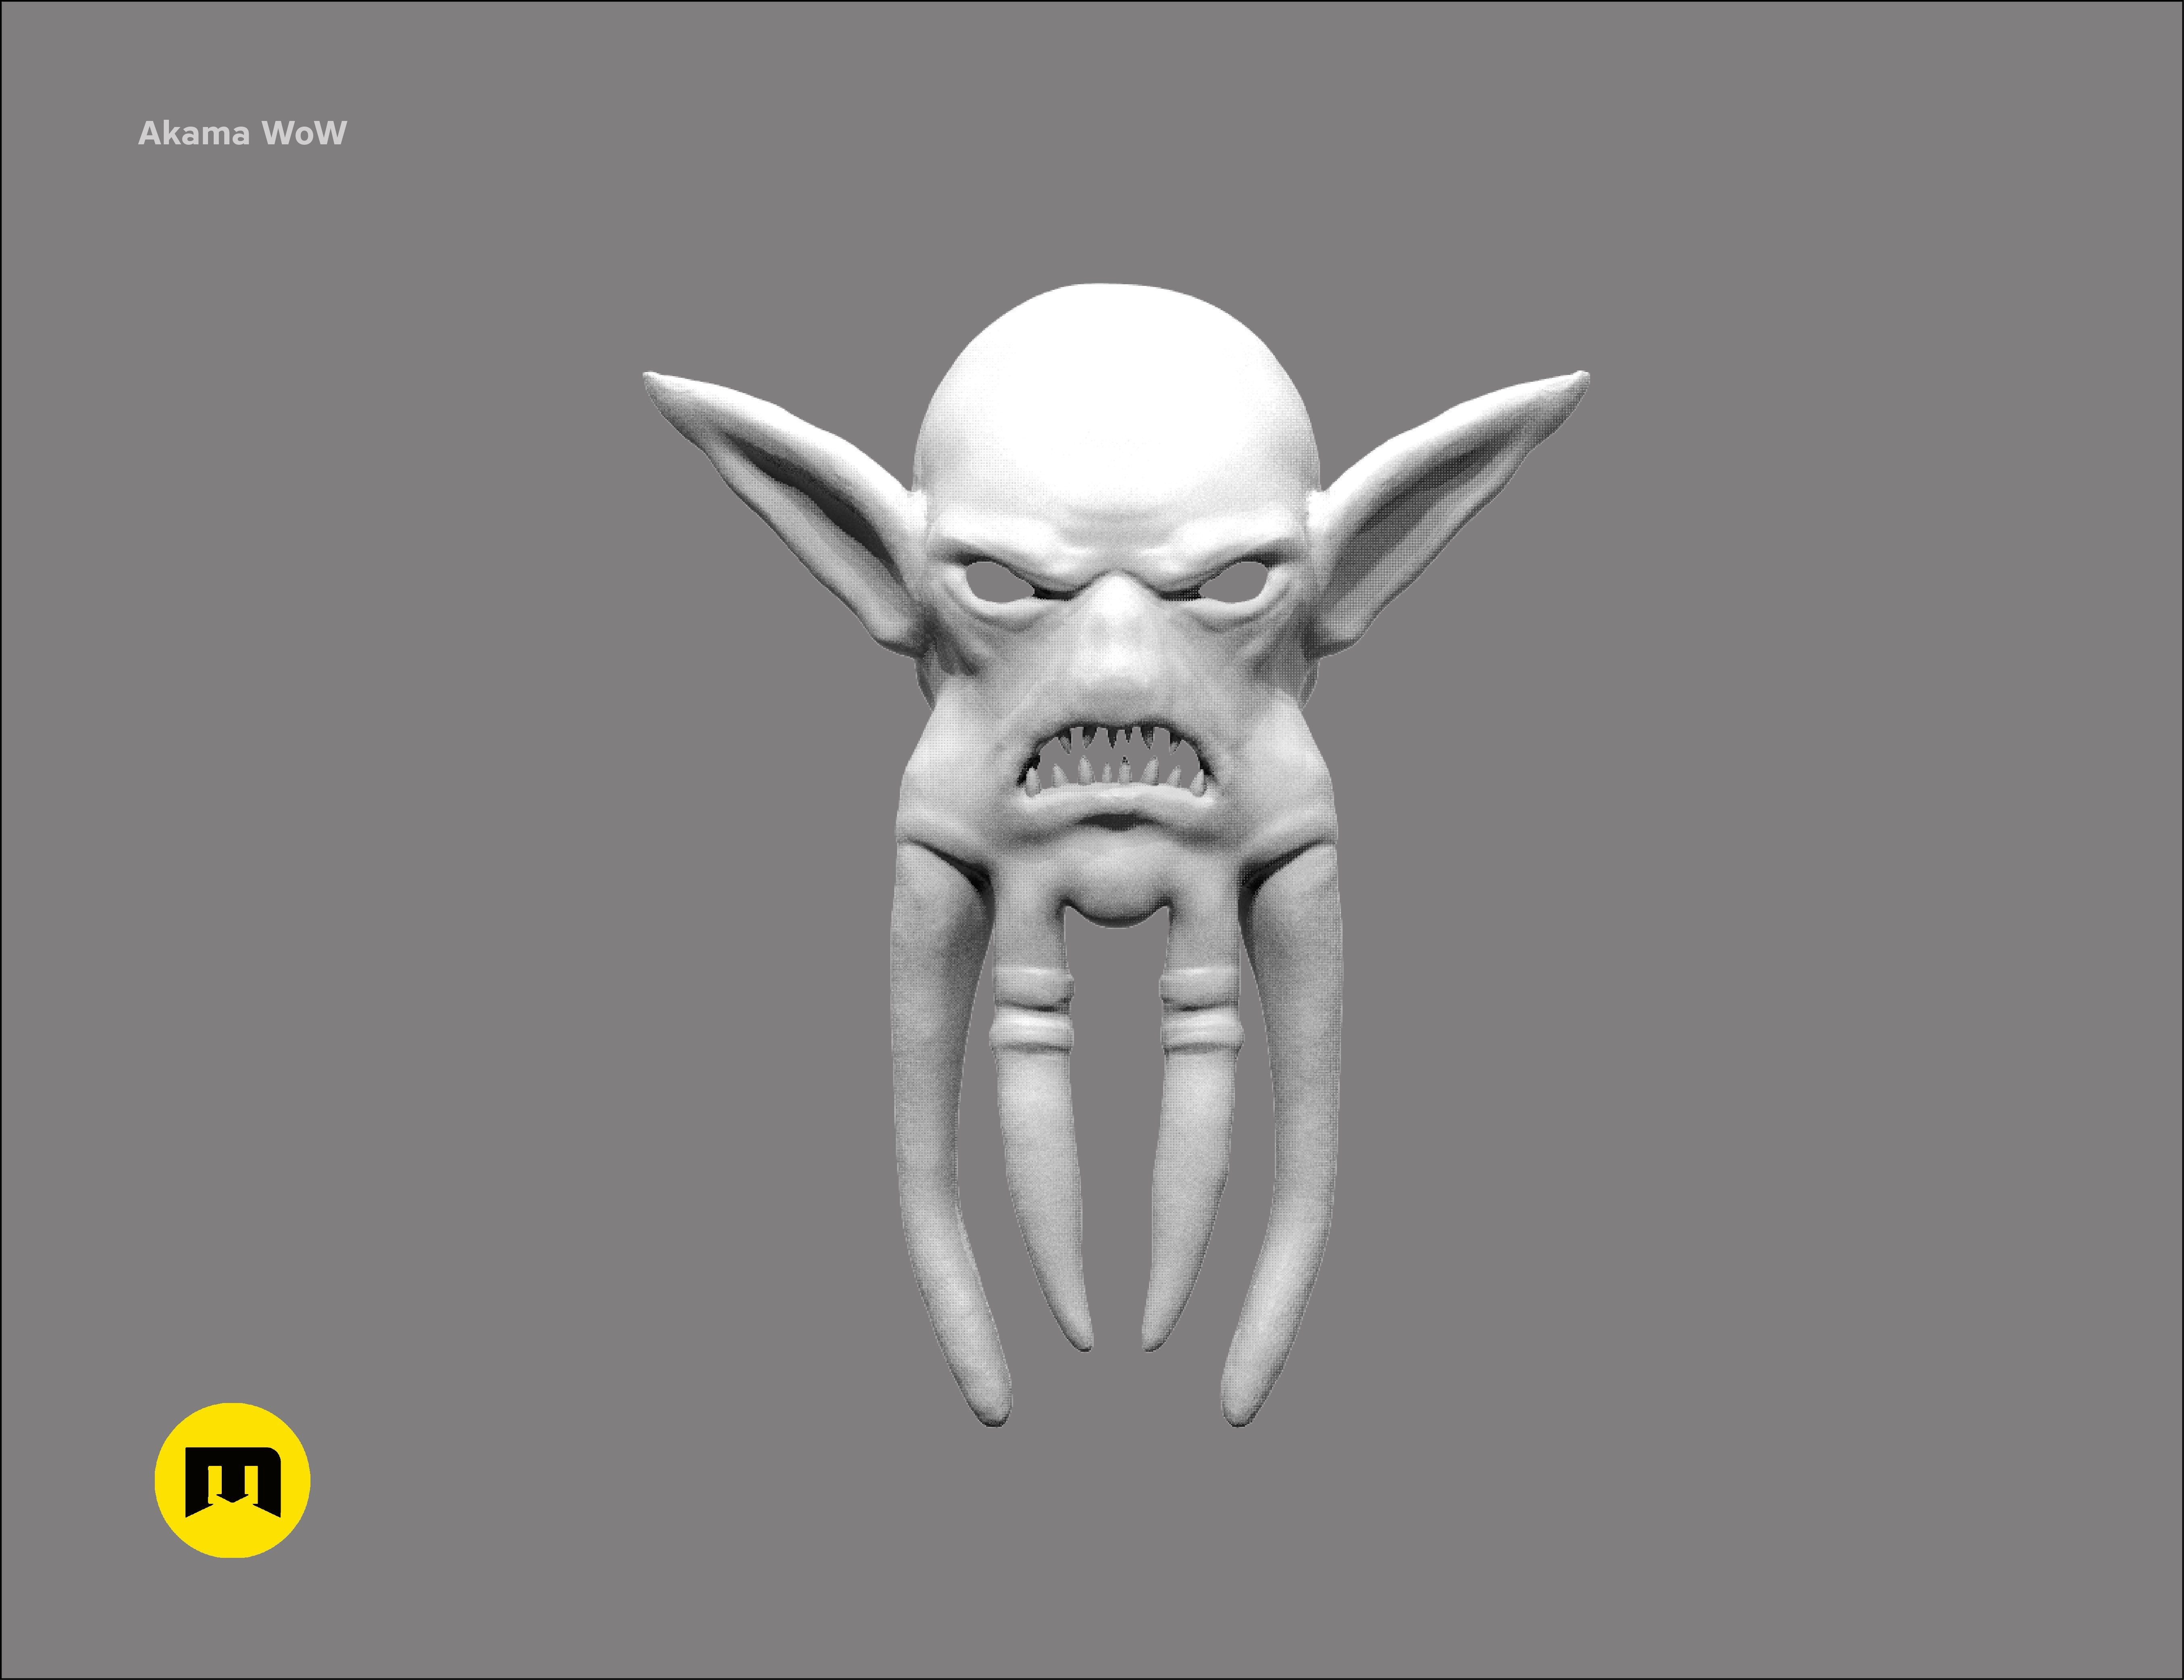 CGTrader_akama2.jpg Download STL file Mask of Akama's face from World of Warcraft • Model to 3D print, 3D-mon